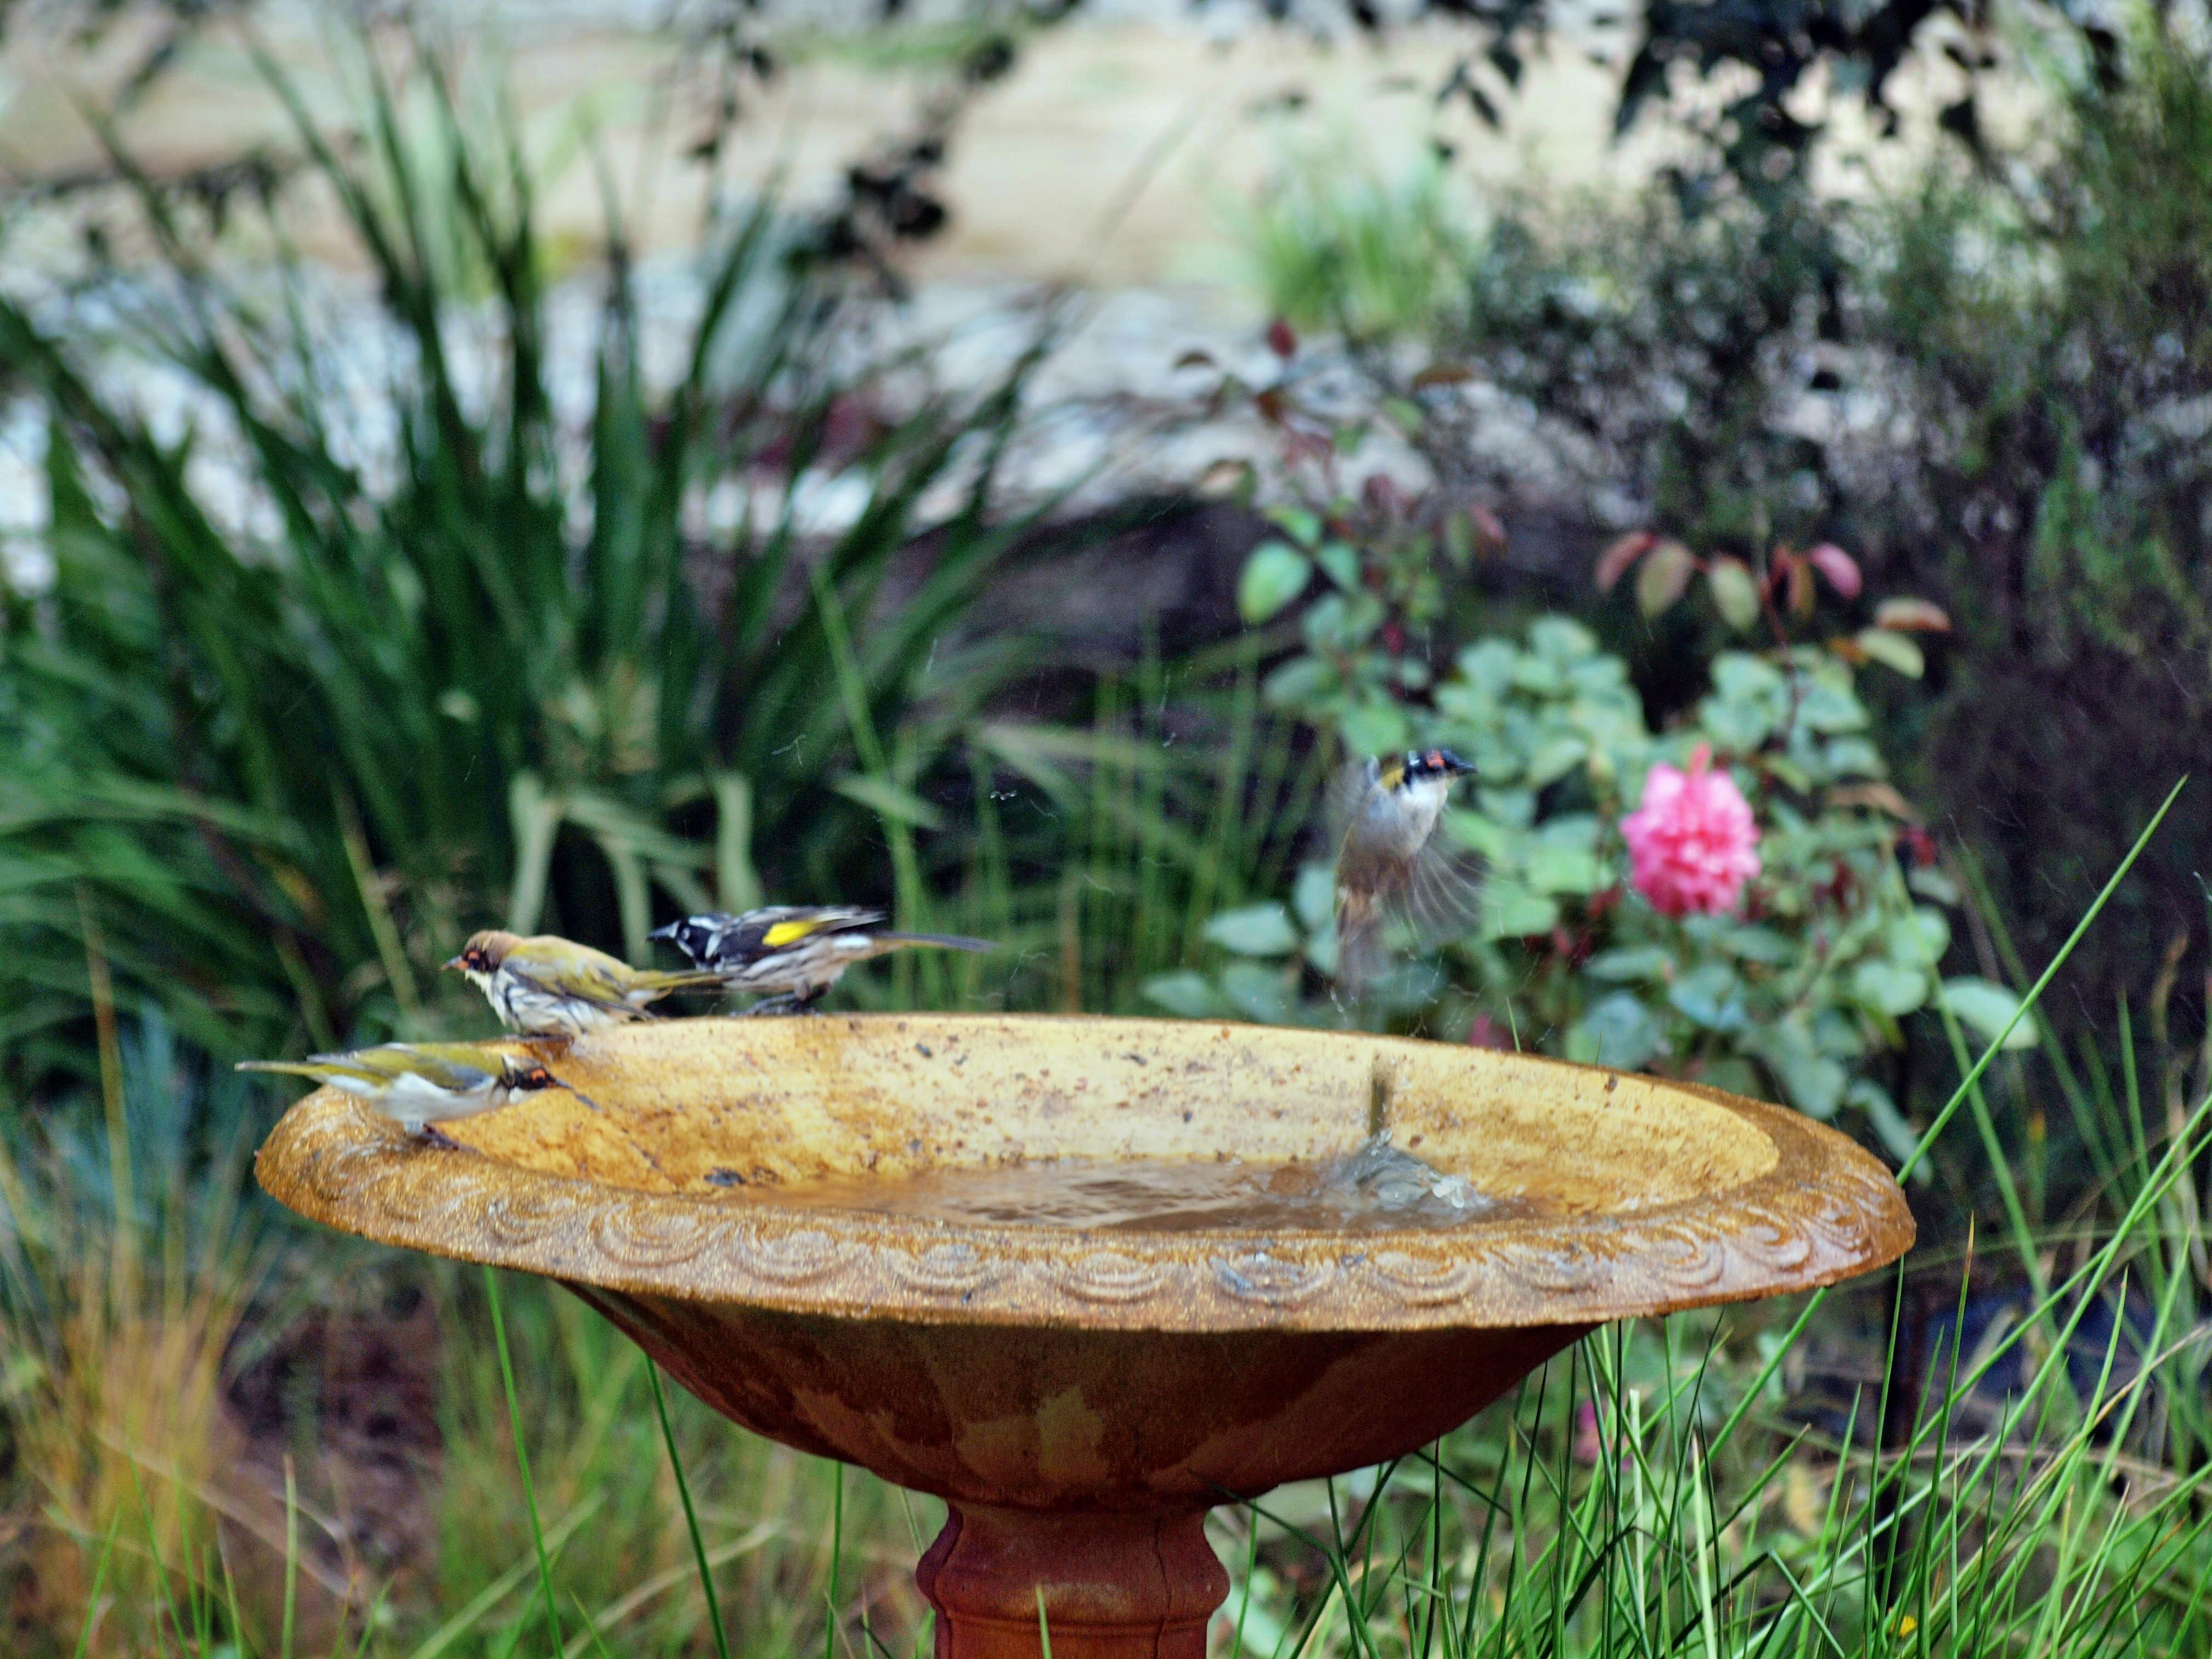 This should be Bird-bath-27.jpeg.  Is it missing?